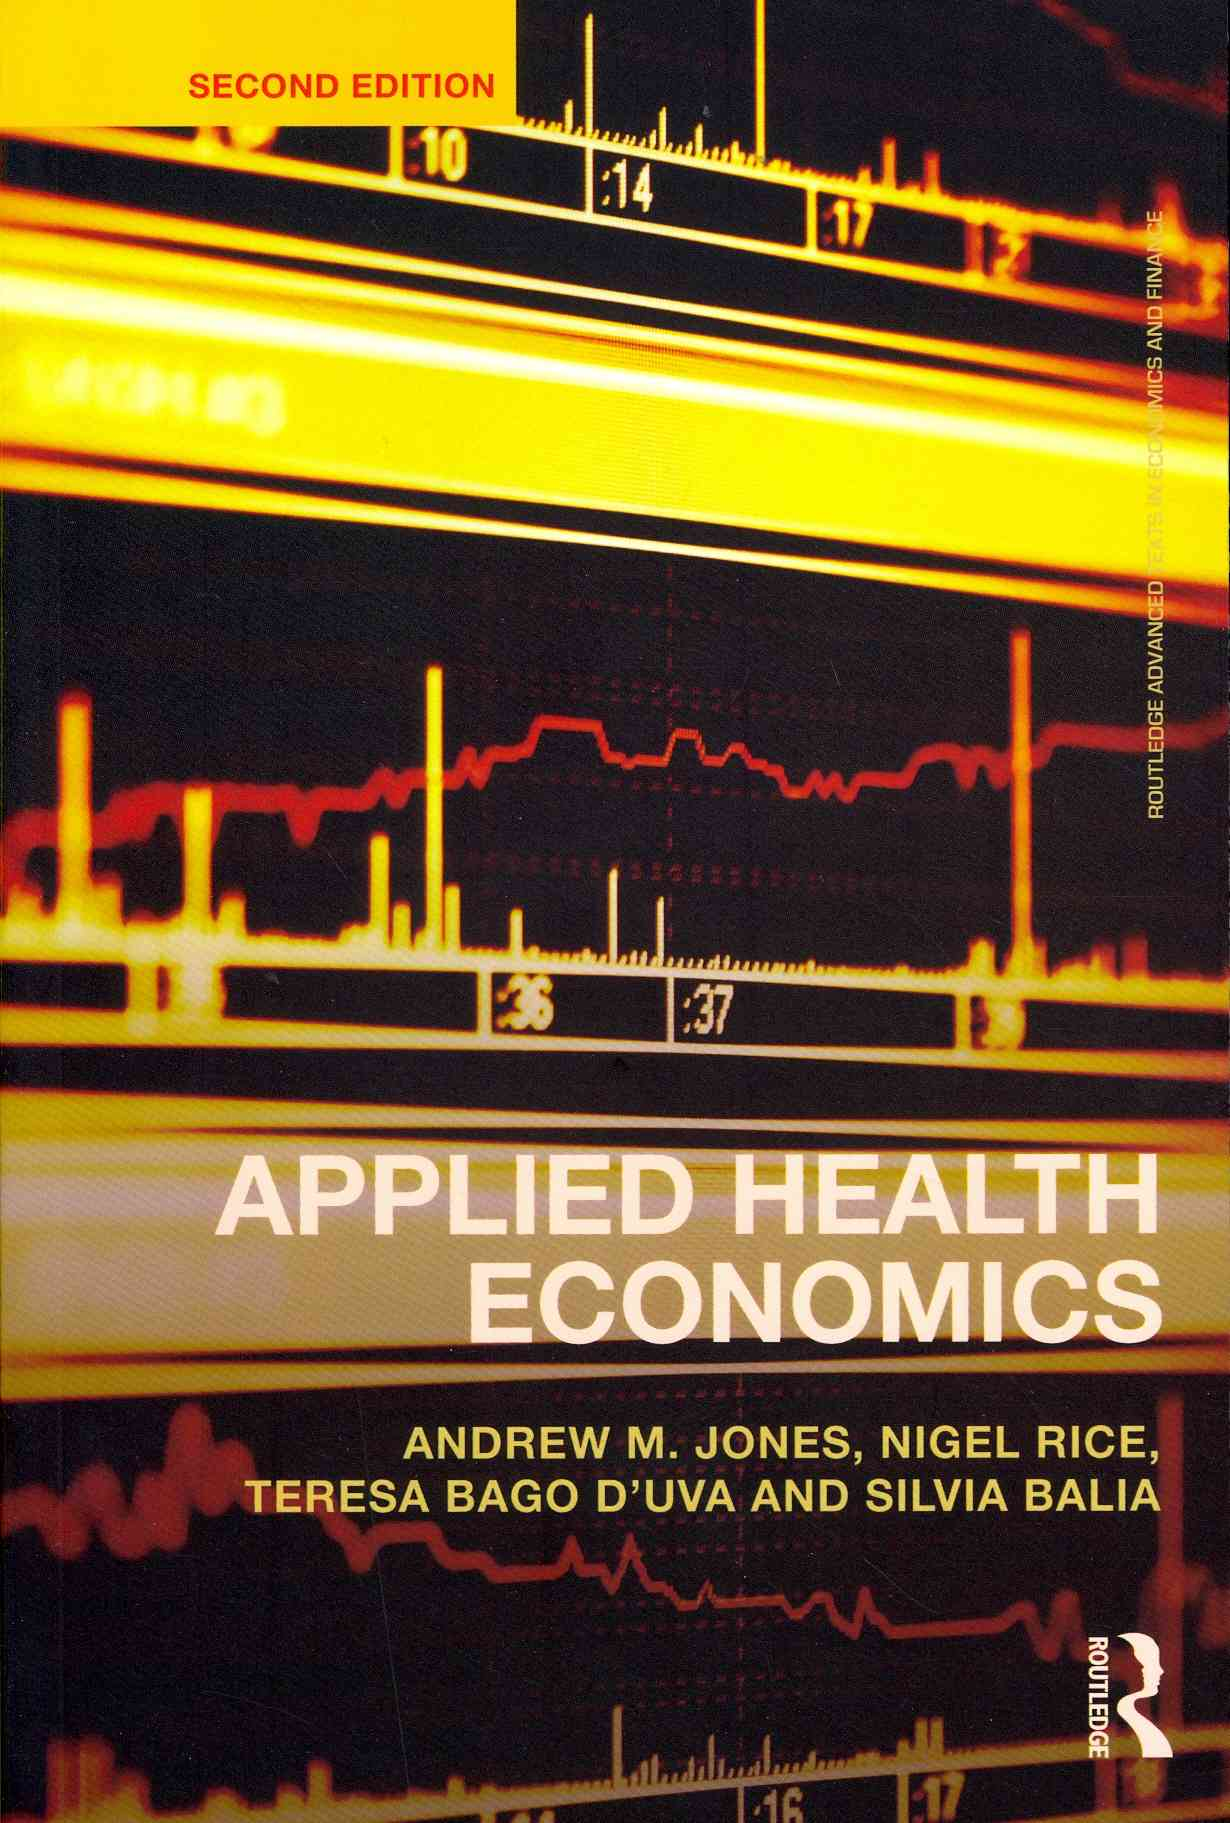 Applied Health Economics By Jones, Andrew M./ Rice, Nigel/ Bago D'uva, Teresa/ Balia, Silvia